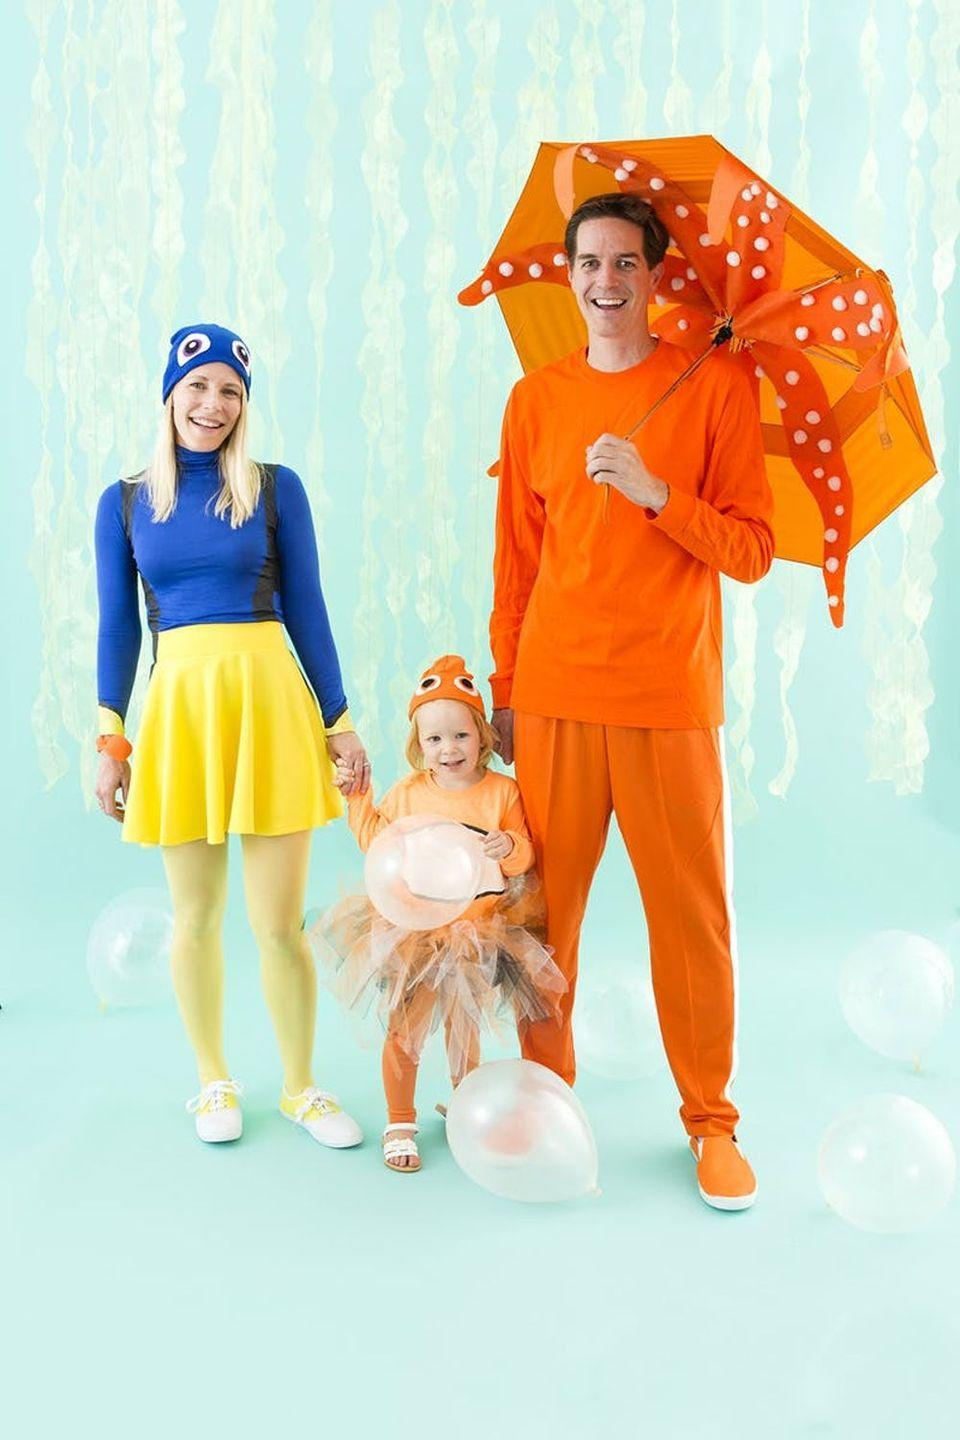 """<p>You know the characters—why not <em>be </em>the characters? This <em>Finding Dory</em> costume is simply delightful.</p><p><strong>Get the tutorial at <a href=""""https://www.brit.co/finding-dory-family-costume/"""" rel=""""nofollow noopener"""" target=""""_blank"""" data-ylk=""""slk:Brit + Co."""" class=""""link rapid-noclick-resp"""">Brit + Co.</a></strong></p><p><a class=""""link rapid-noclick-resp"""" href=""""https://www.amazon.com/Lewis-N-Clark-Lightweight-Automatically/dp/B00GFU6DEQ?tag=syn-yahoo-20&ascsubtag=%5Bartid%7C10050.g.29074815%5Bsrc%7Cyahoo-us"""" rel=""""nofollow noopener"""" target=""""_blank"""" data-ylk=""""slk:SHOP ORANGE UMBRELLAS"""">SHOP ORANGE UMBRELLAS</a></p>"""